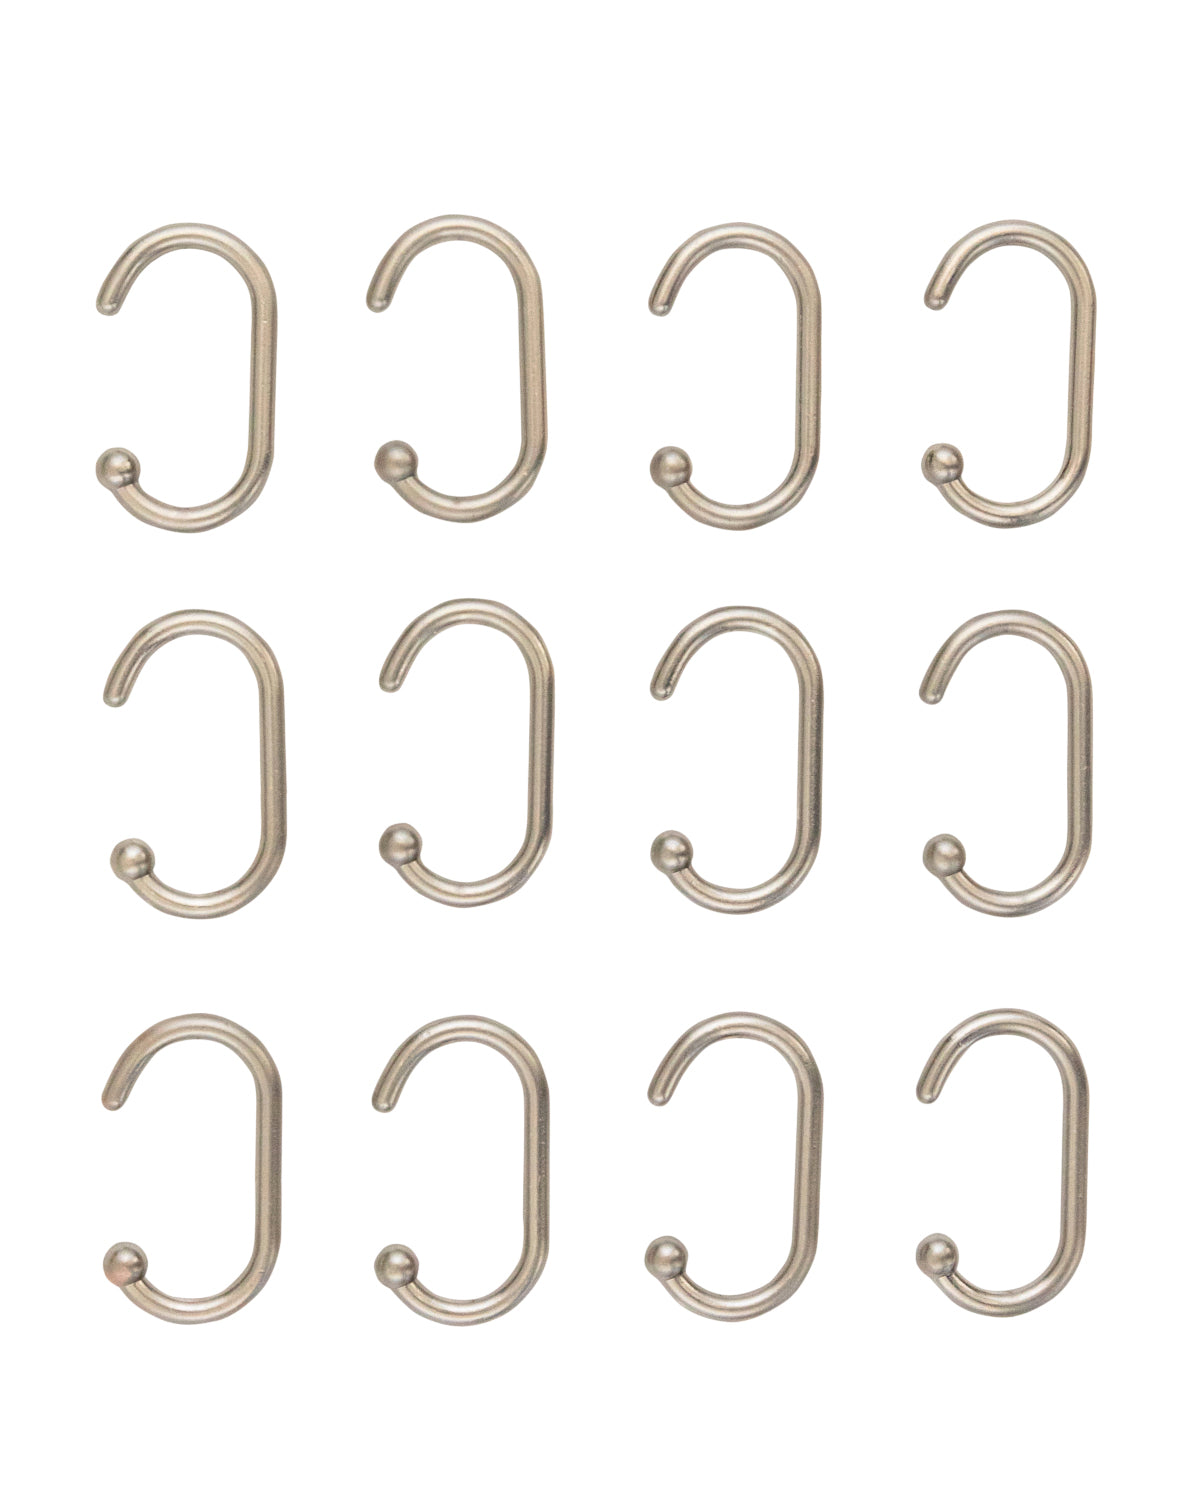 Aluminum Shower Hooks (Set of 12)